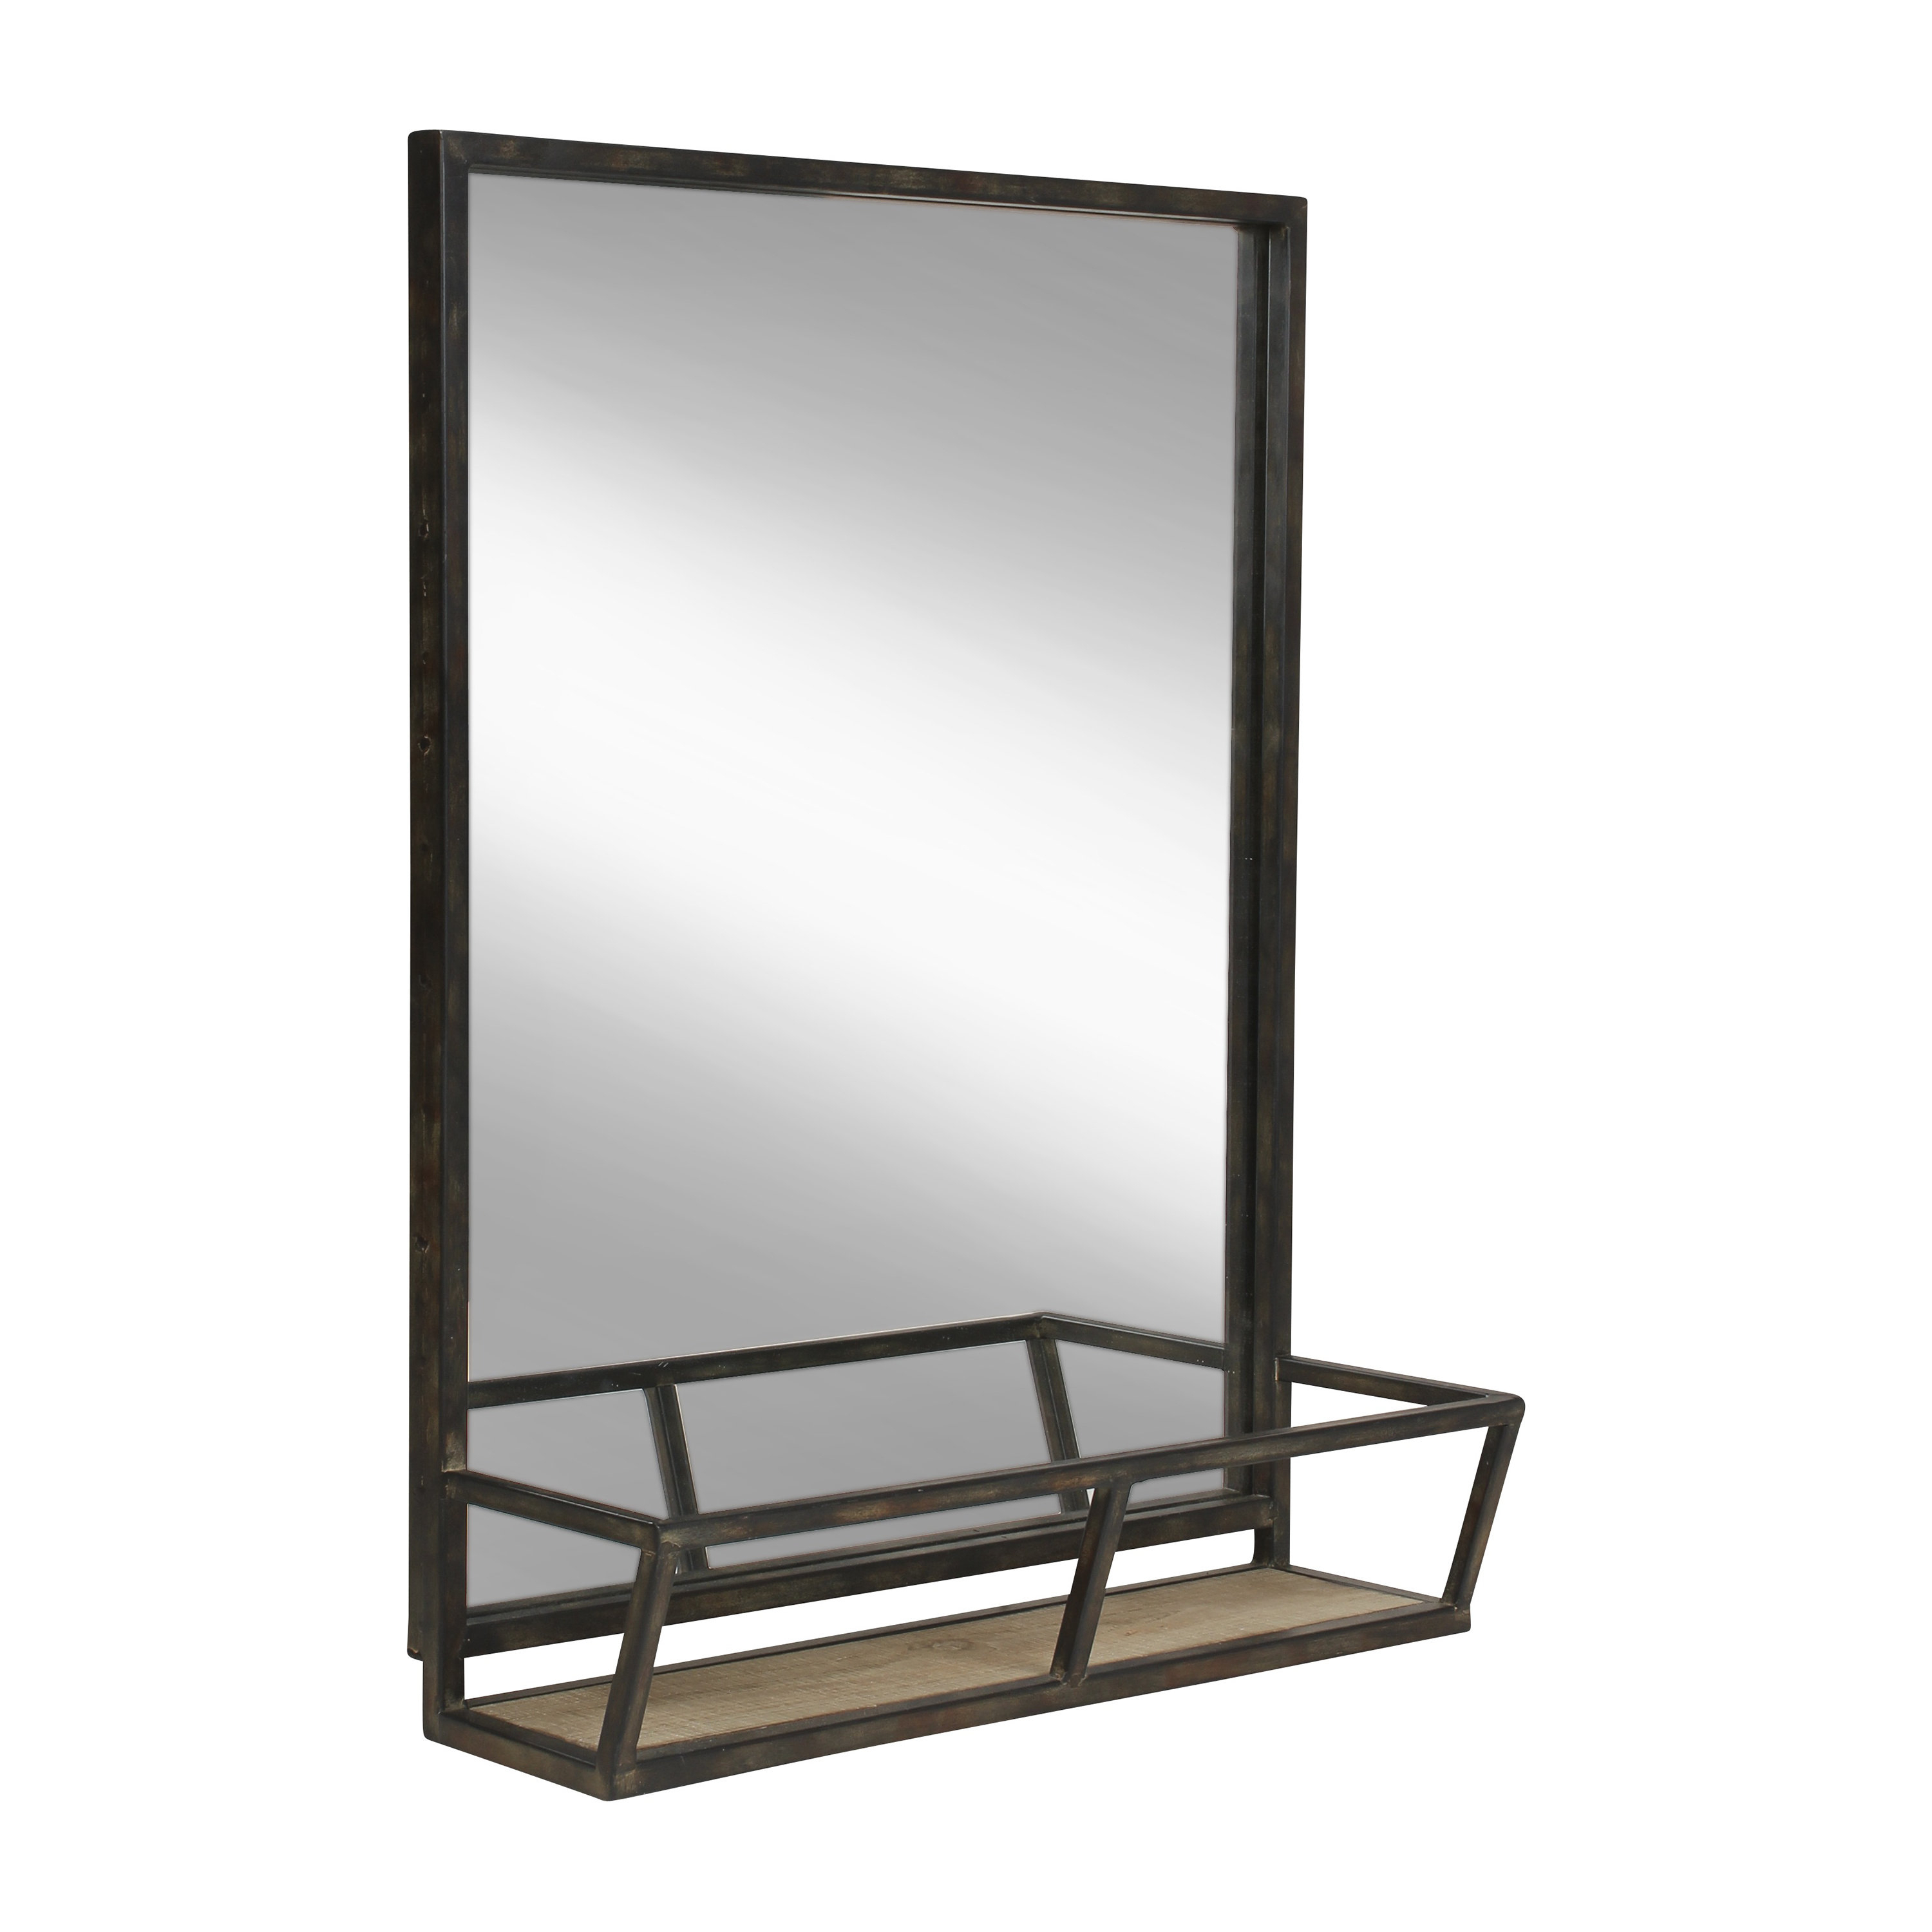 Kaufman Industrial Accent Mirror With Shelves With Regard To Most Popular Peetz Modern Rustic Accent Mirrors (View 20 of 20)